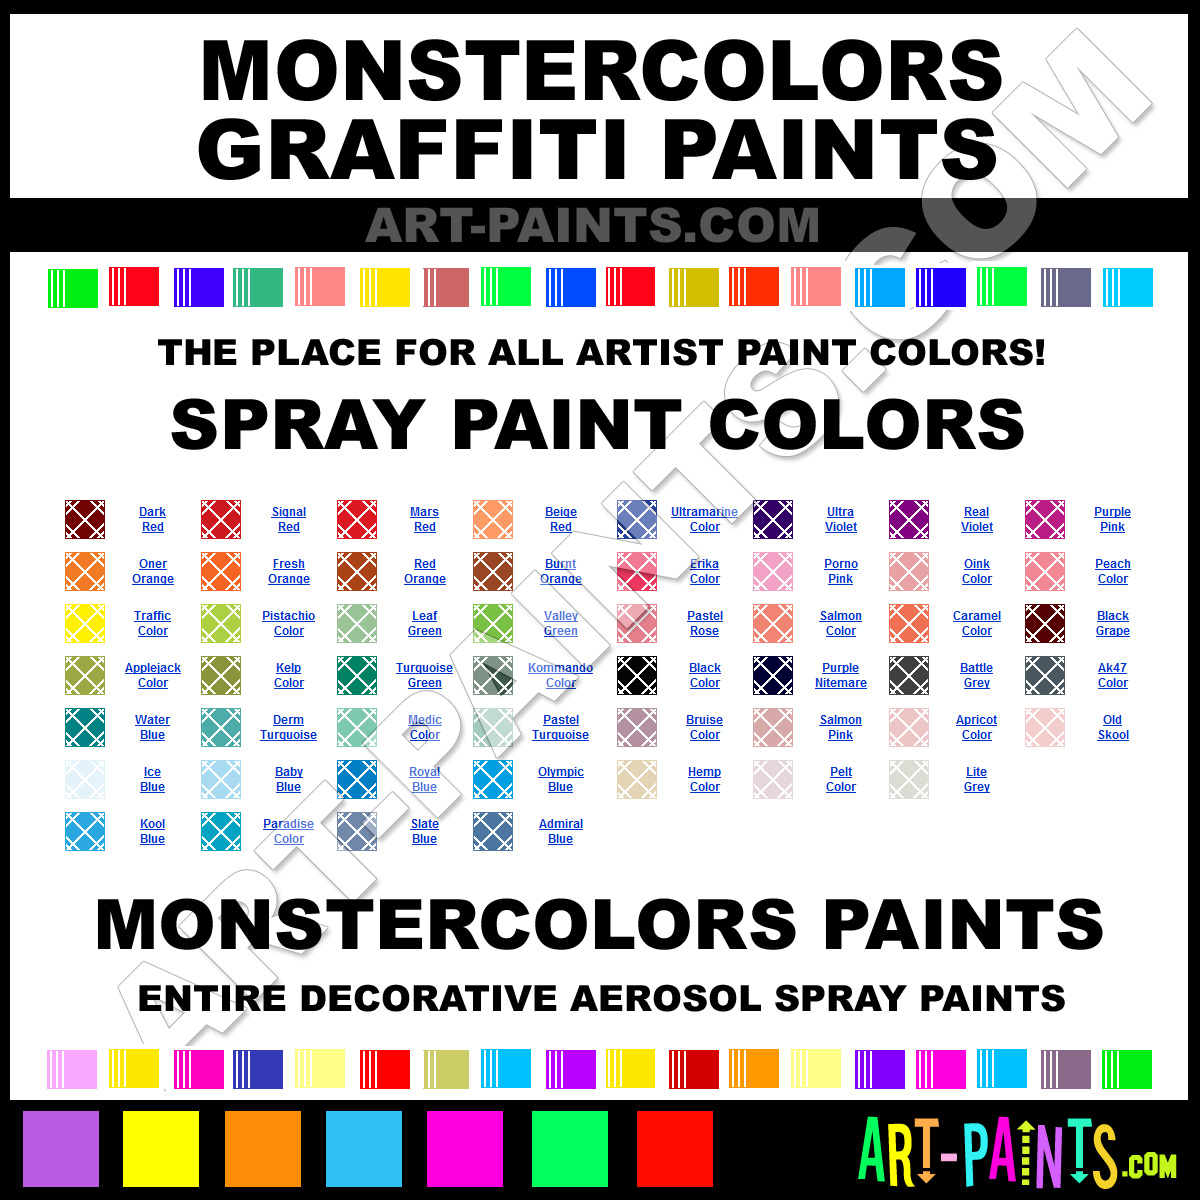 Monstercolors Images